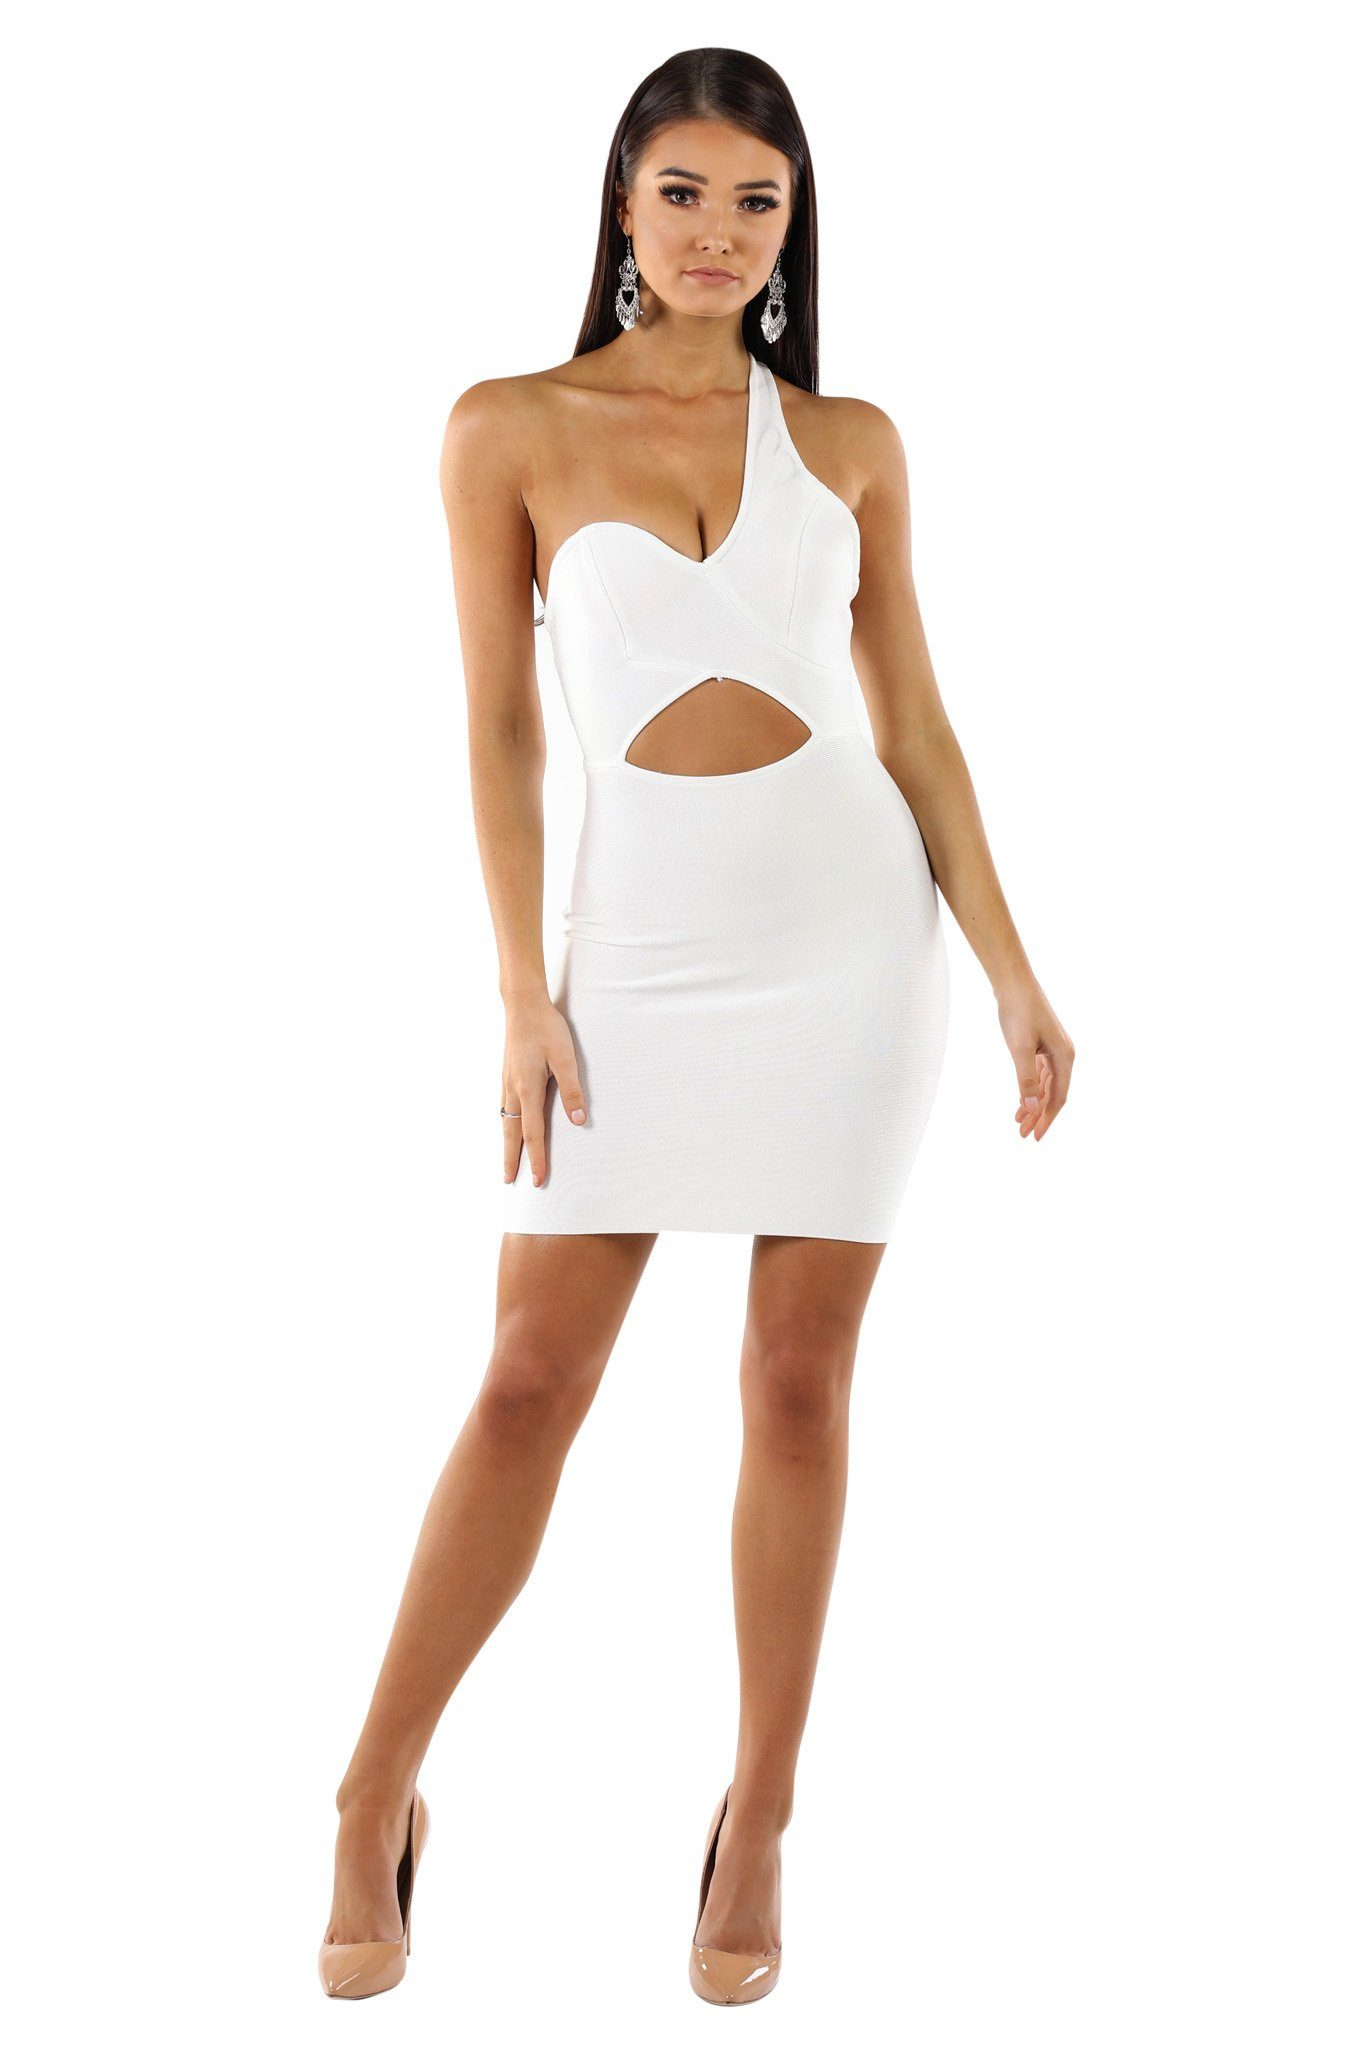 White sleeveless above-knee length bandage dress one shoulder strap with cutout